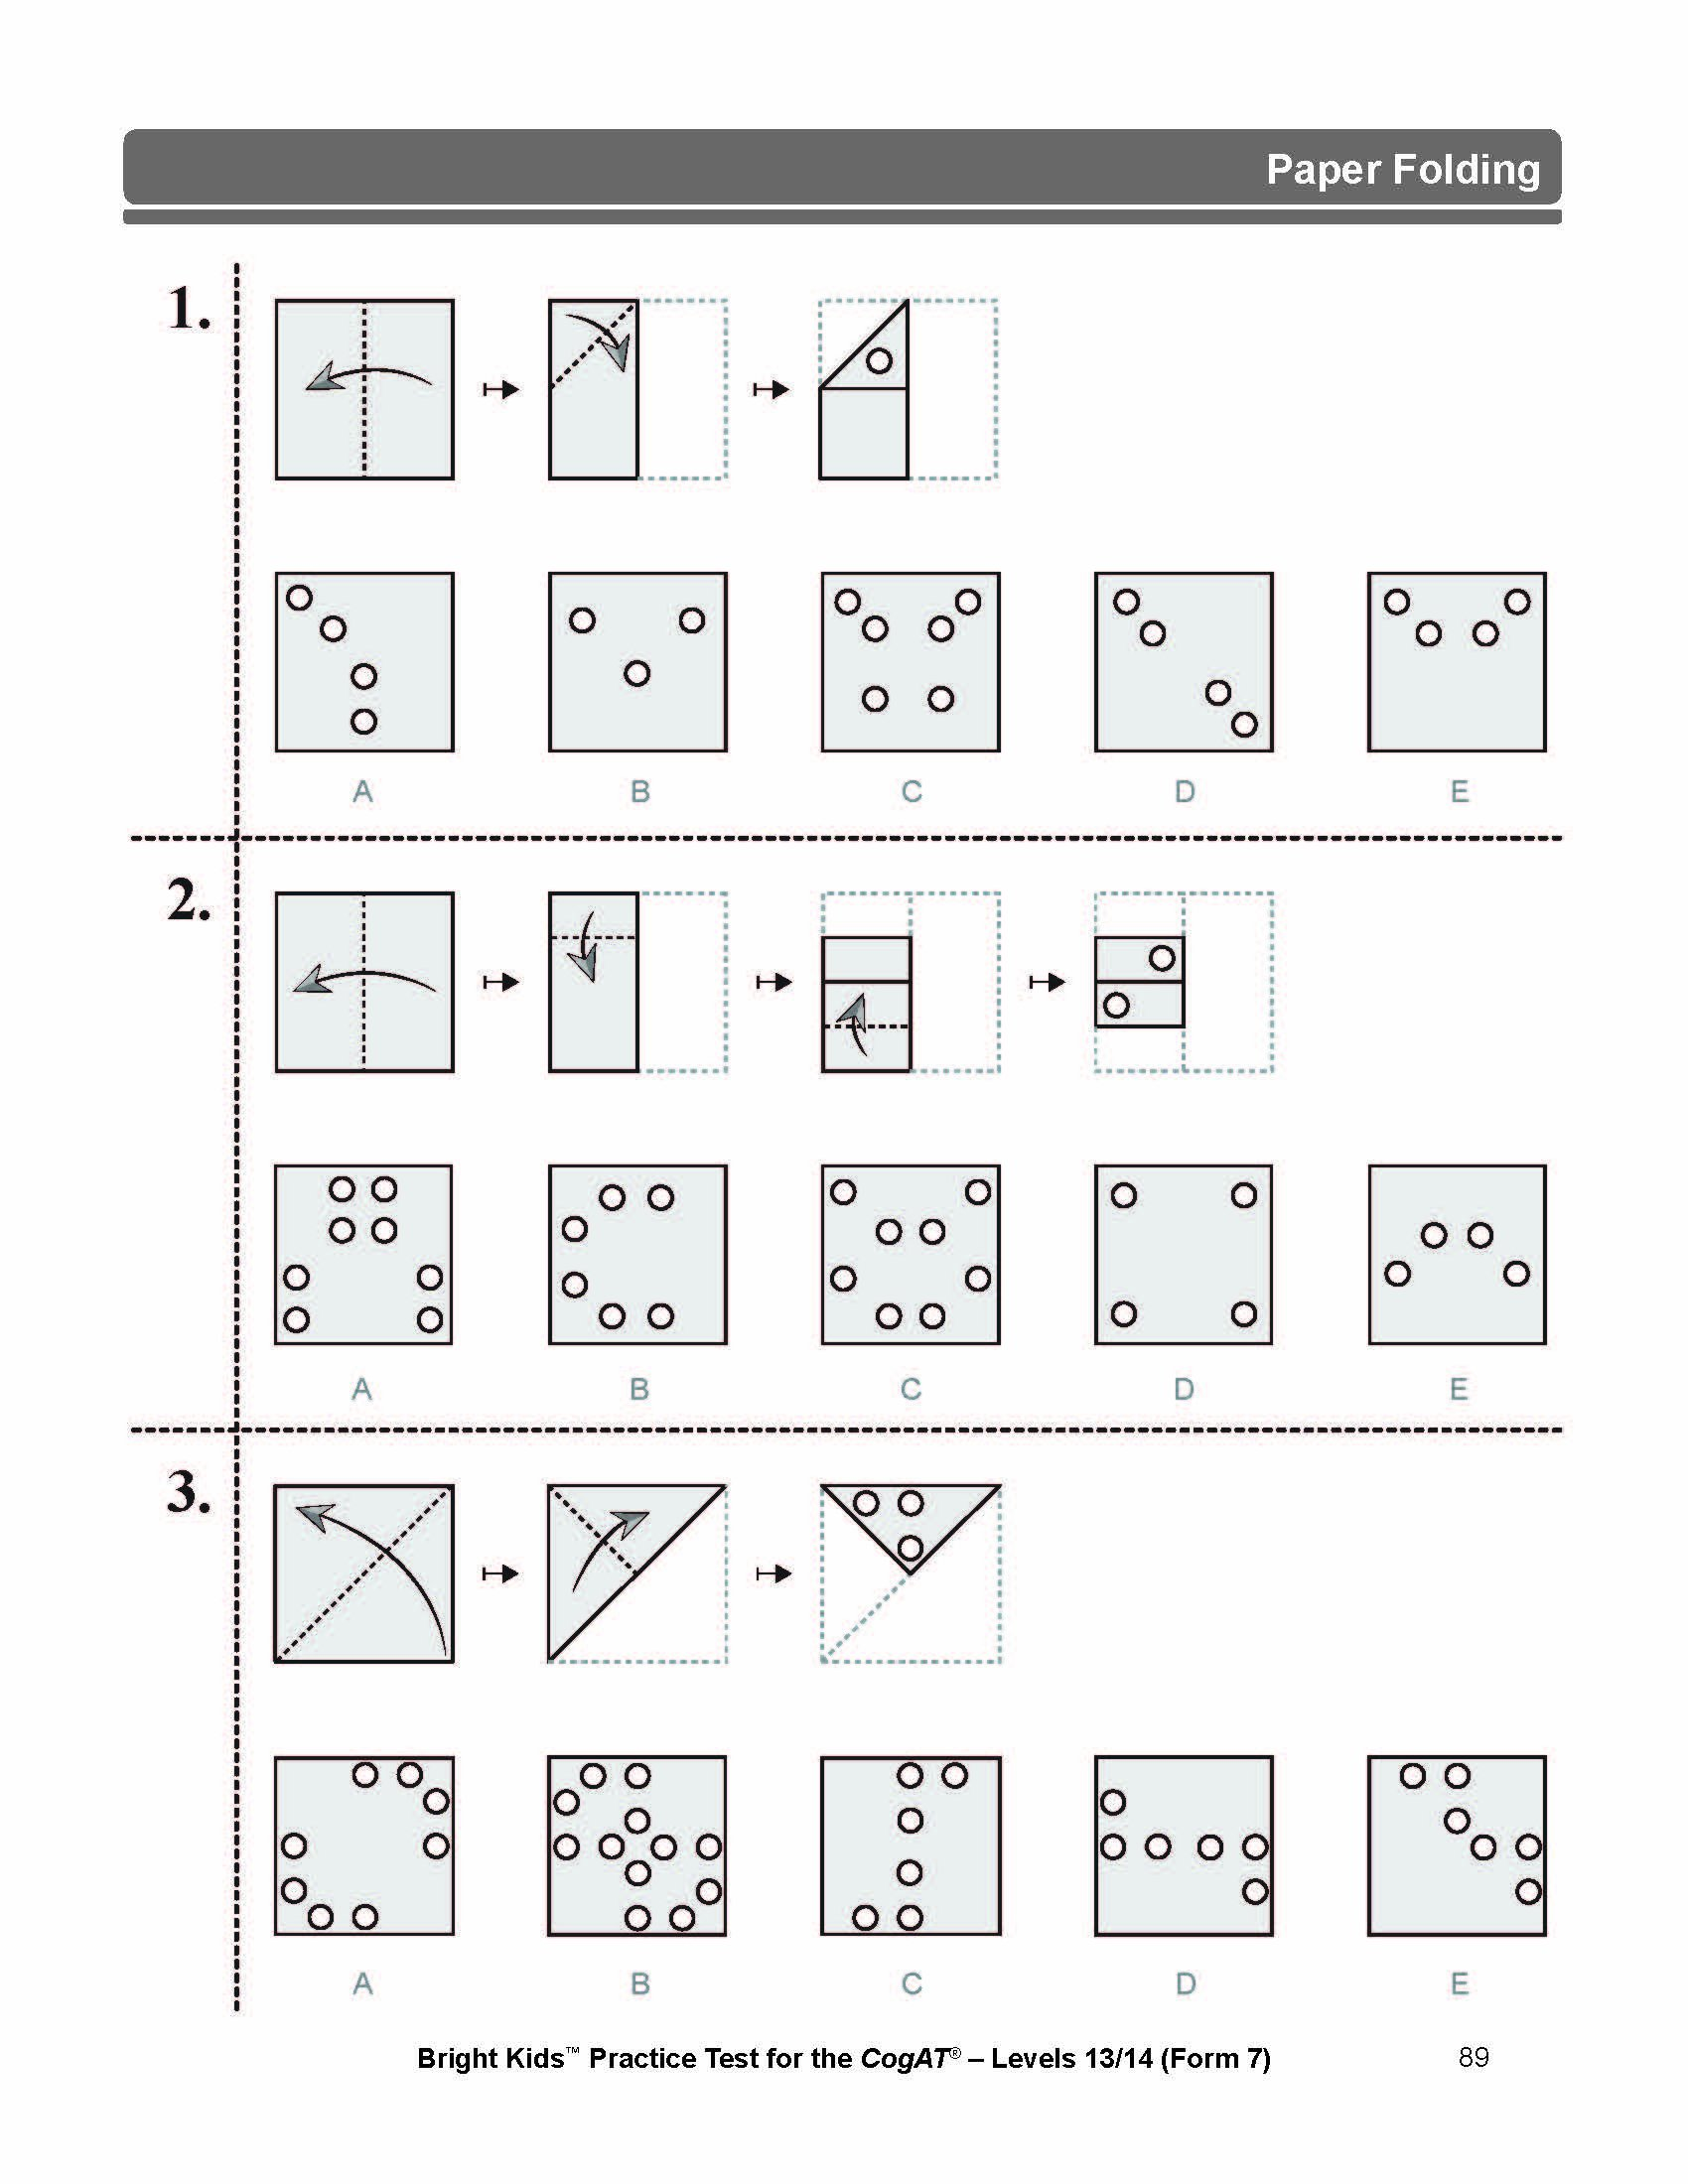 Practice Test for the CogAT - Levels 13/14 (Form 7): Bright Kids ...